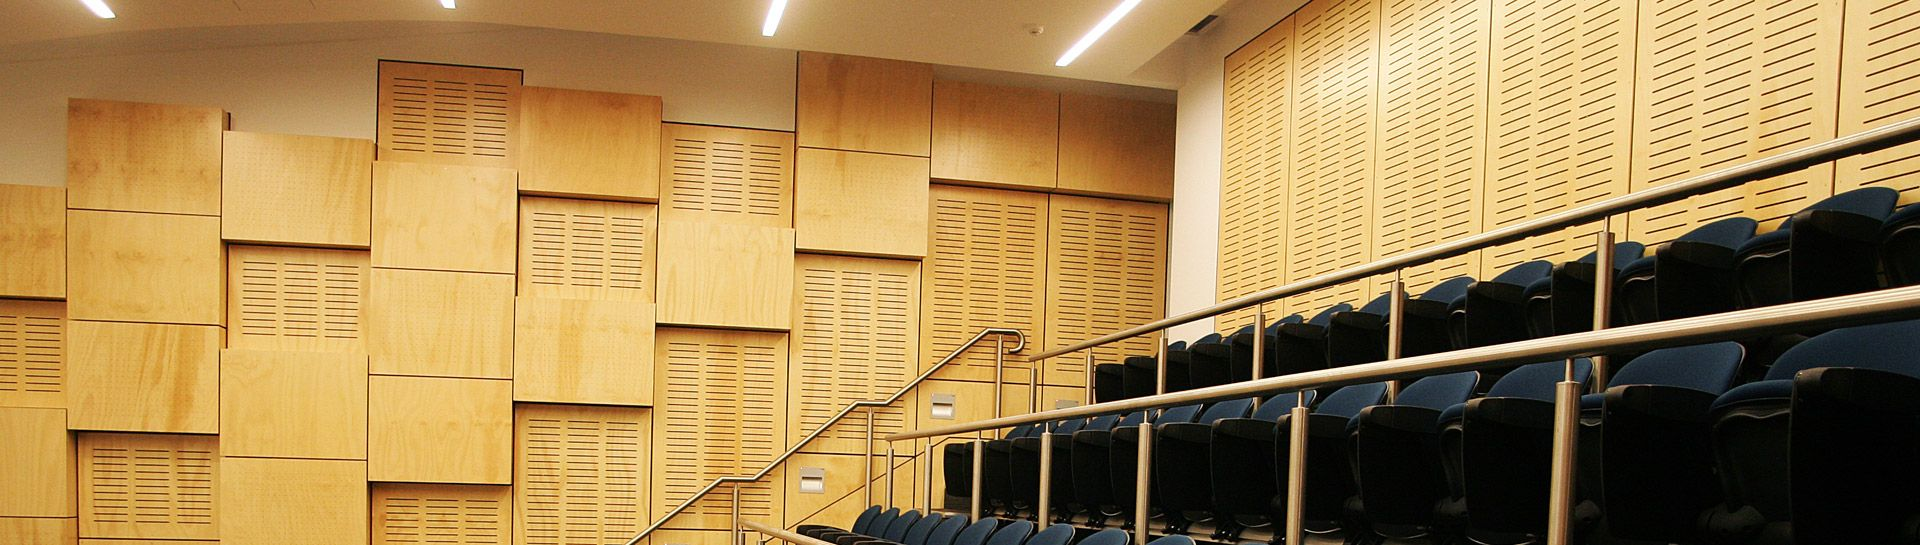 Stunning wall panelling | Lecture Theatre | Key-Ply | Plywood ...